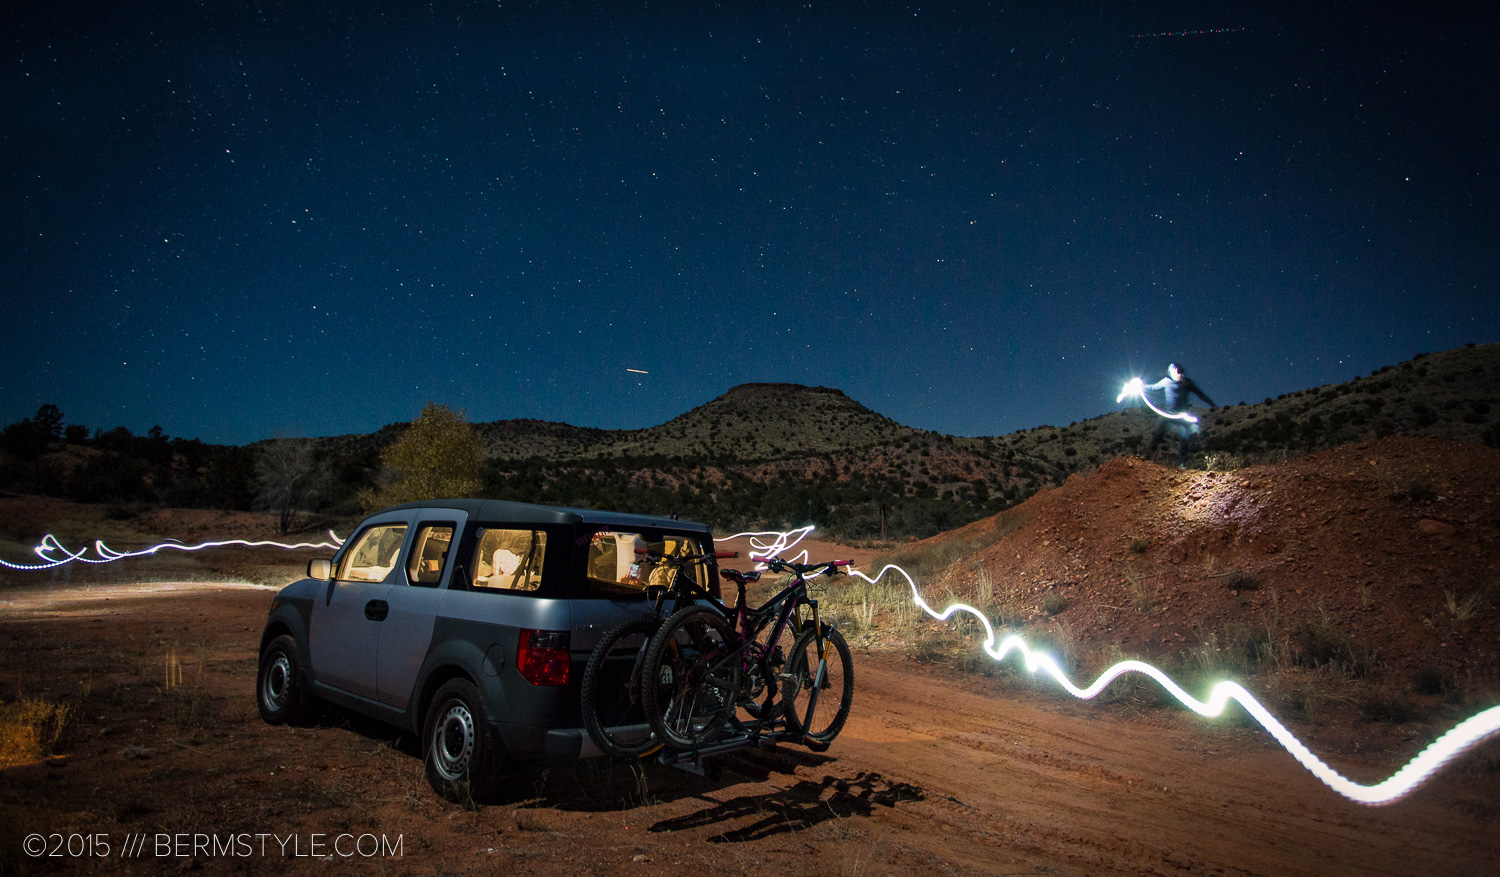 Somewhere south of Sedona, Arizona camped out for the evening.